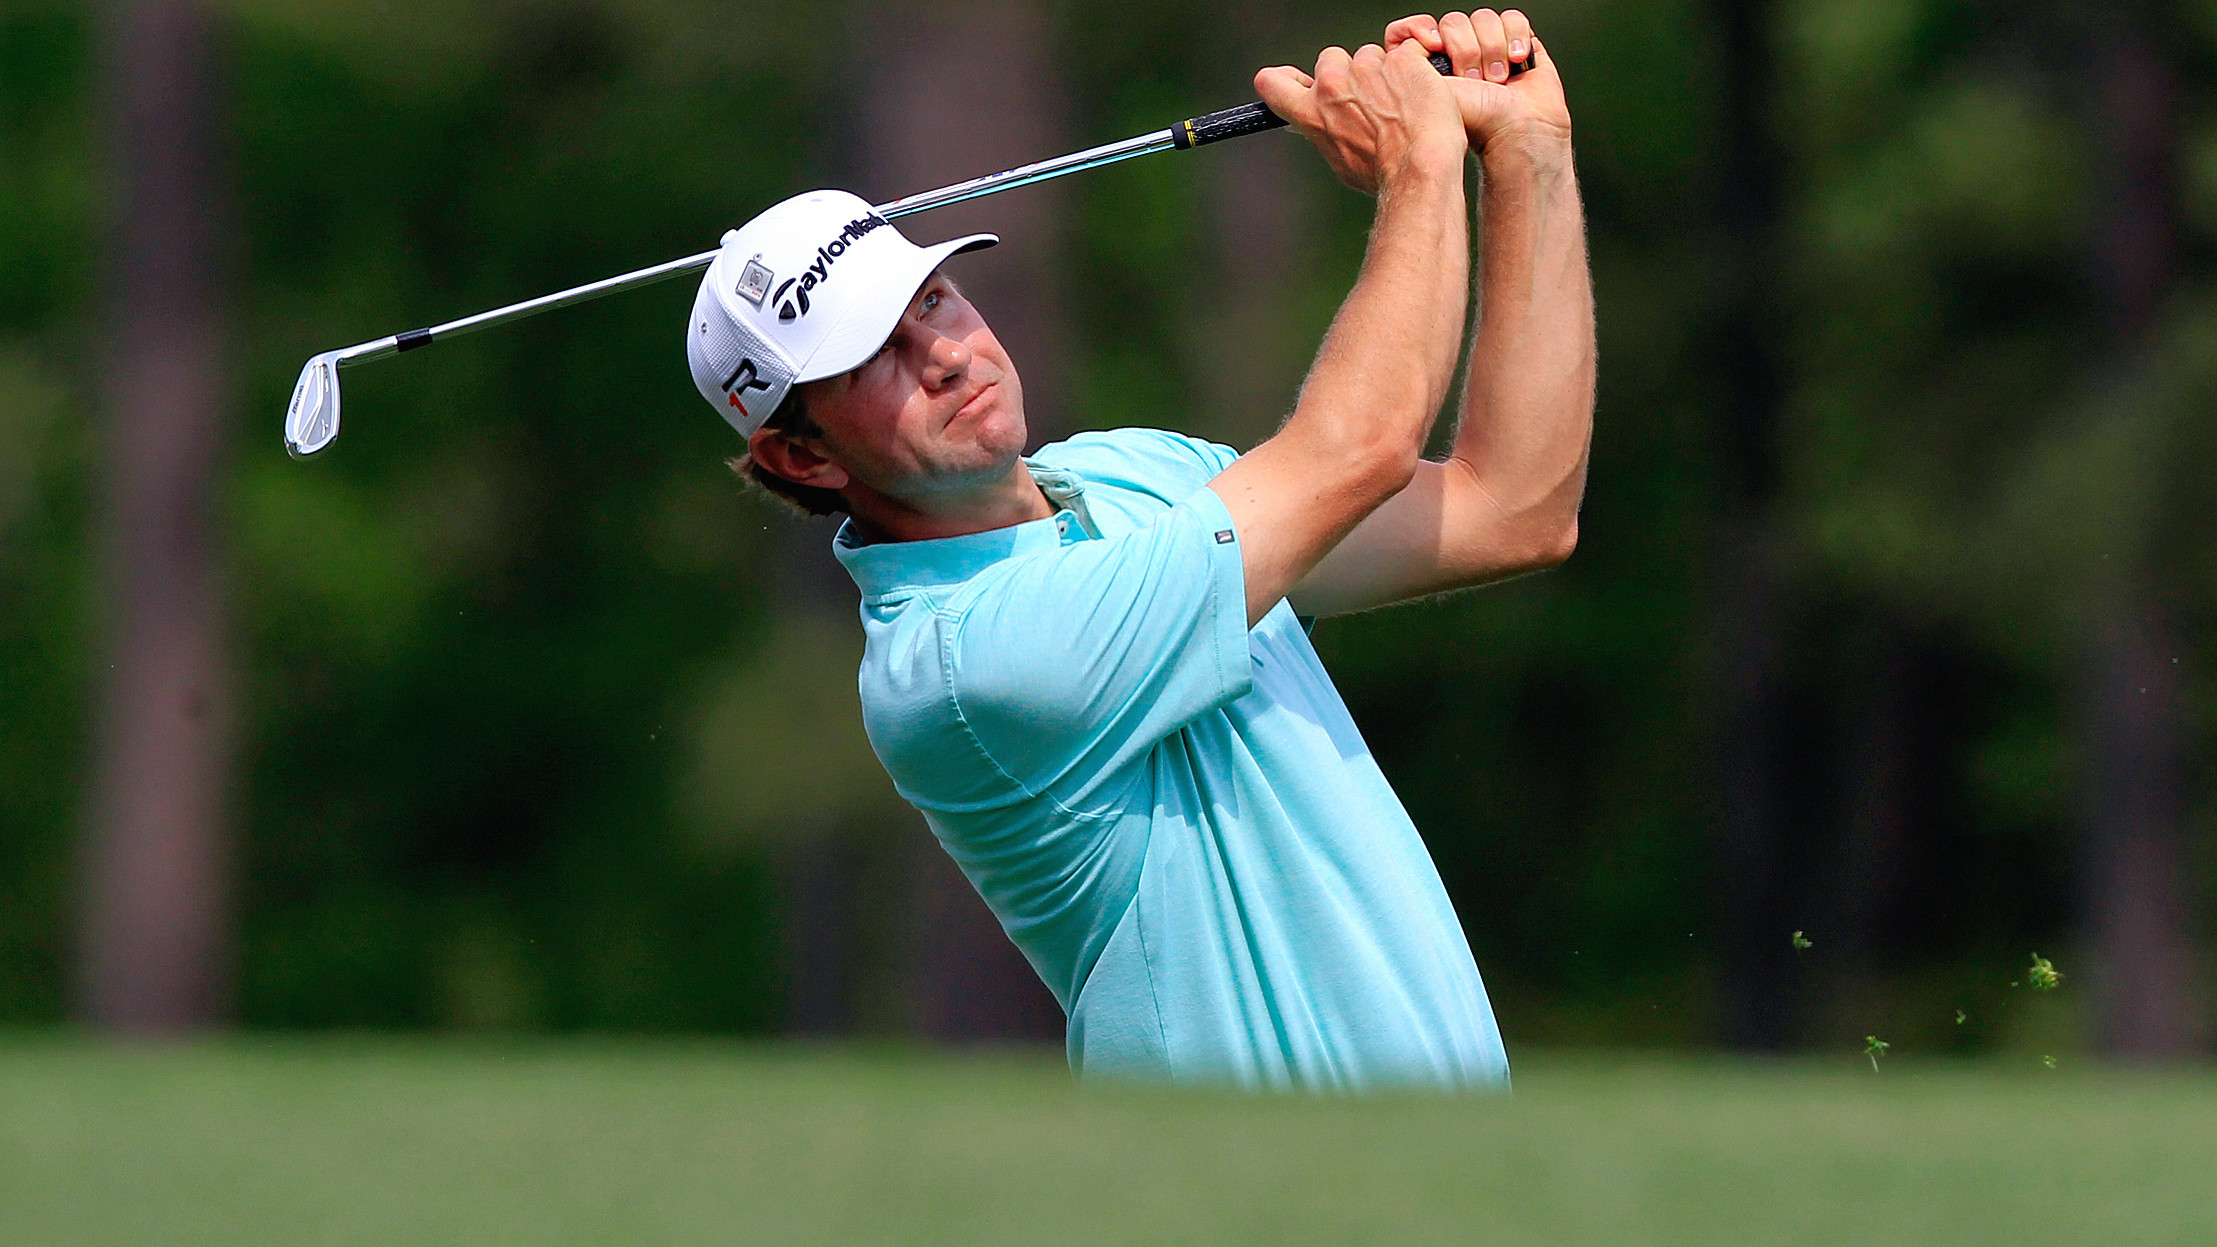 Glover Moves into Top 15 at Masters